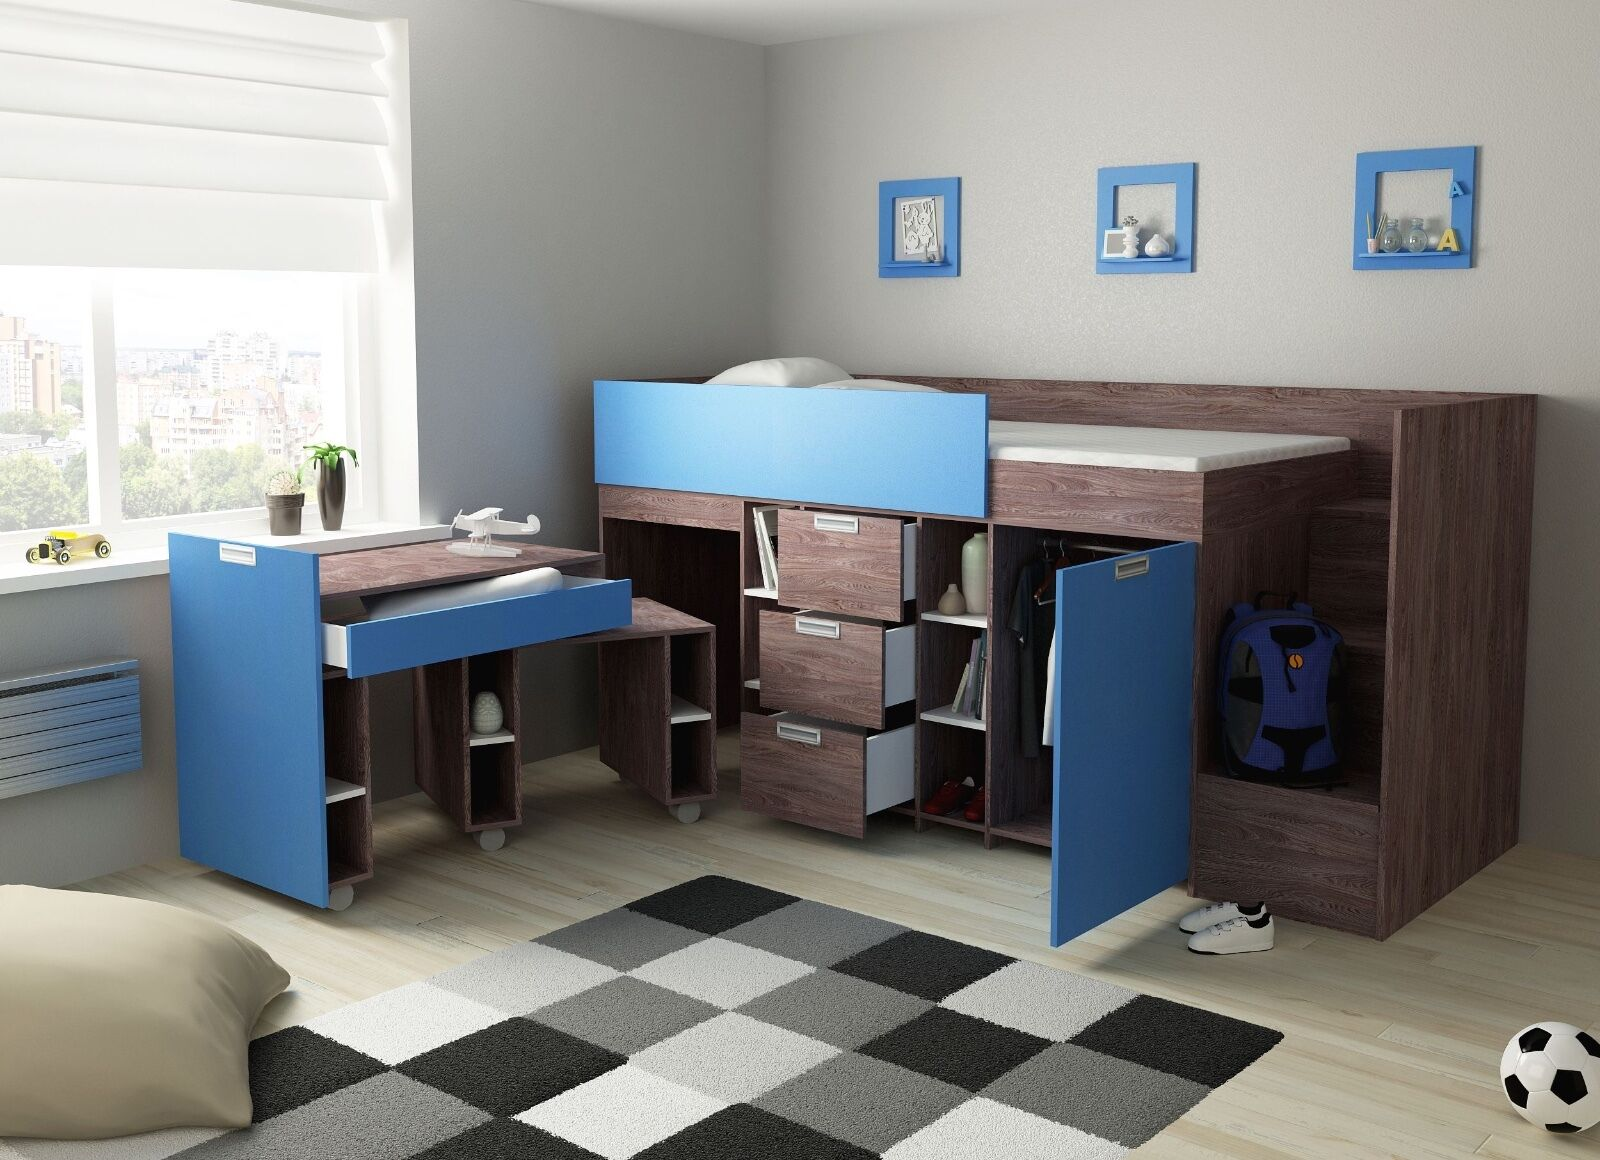 hochbett berg indigo halbhochbett kinderbett etagenbett kinderzimmer 90x200 eur 849 00. Black Bedroom Furniture Sets. Home Design Ideas